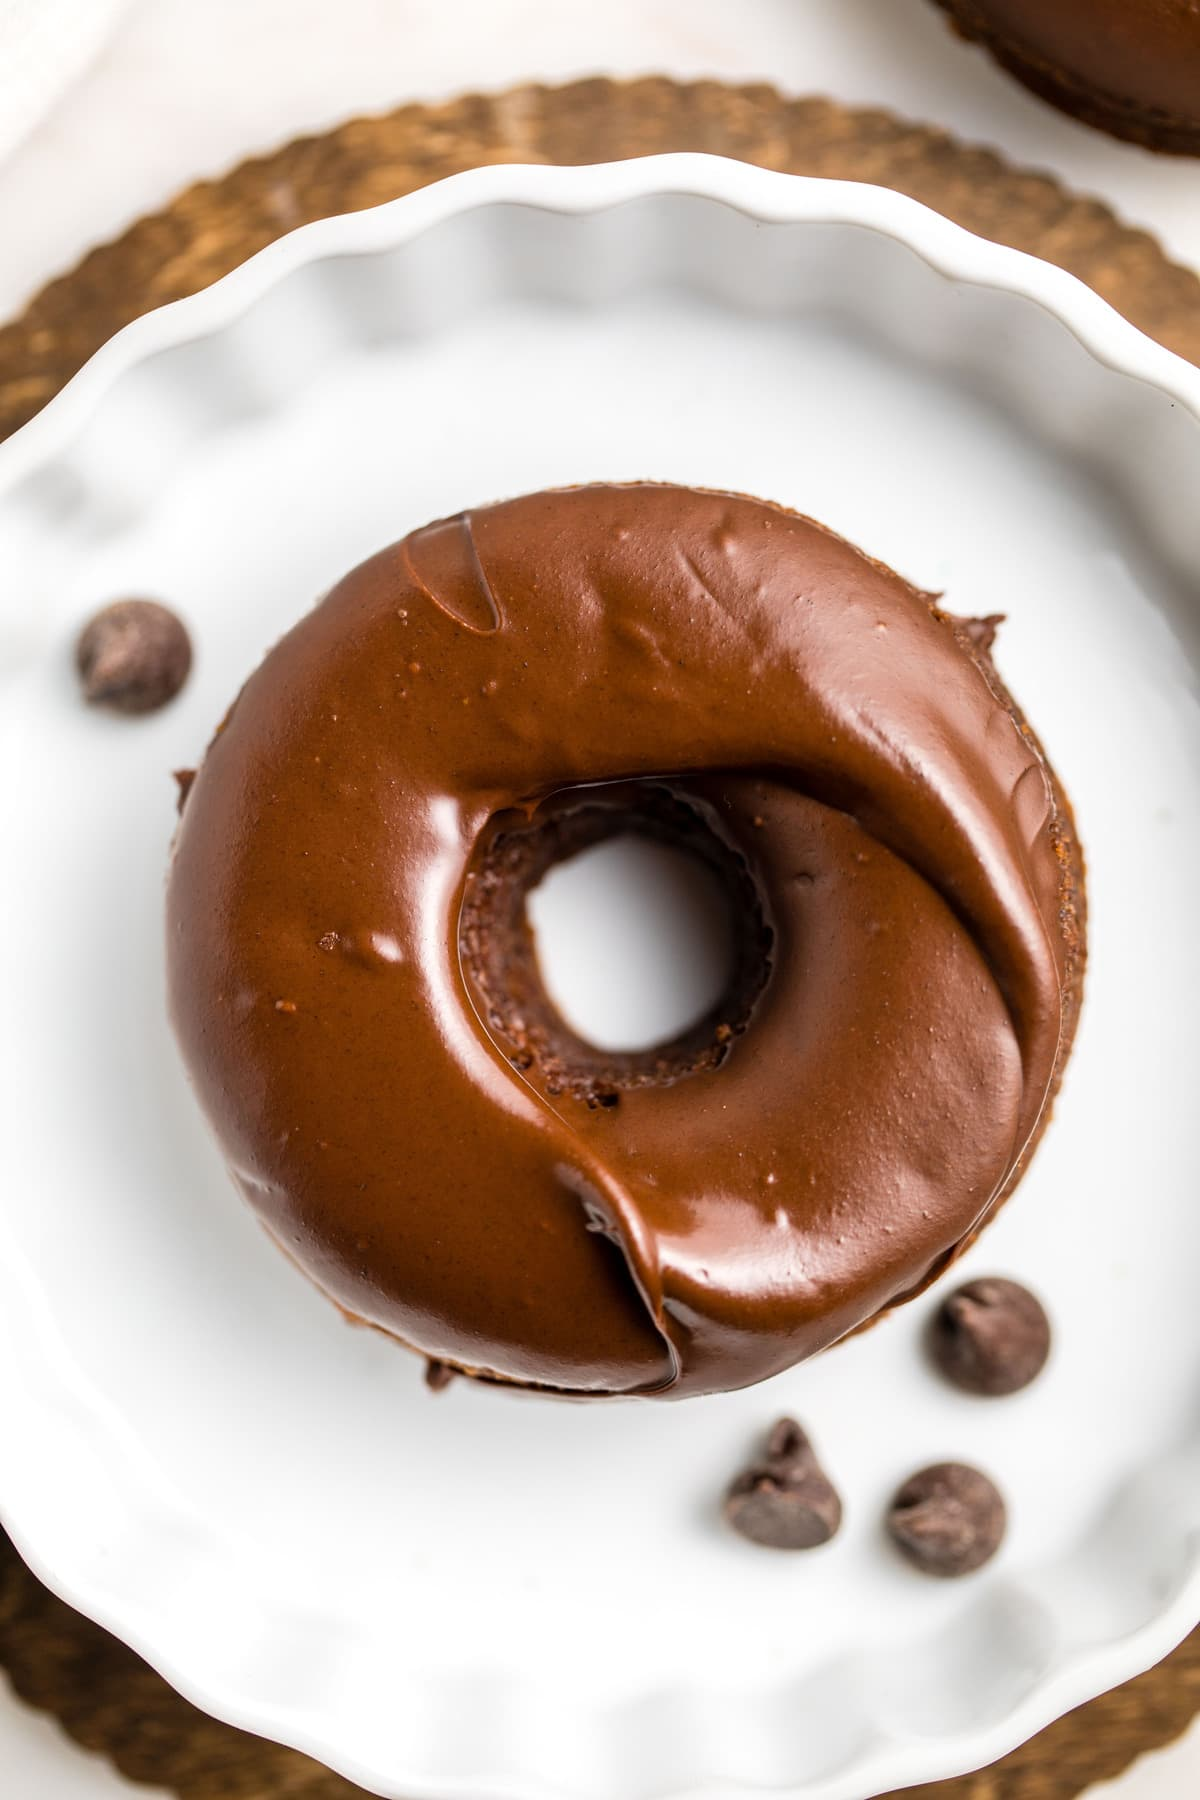 close up photo of chocolate covered donut on white plate with chocolate chips